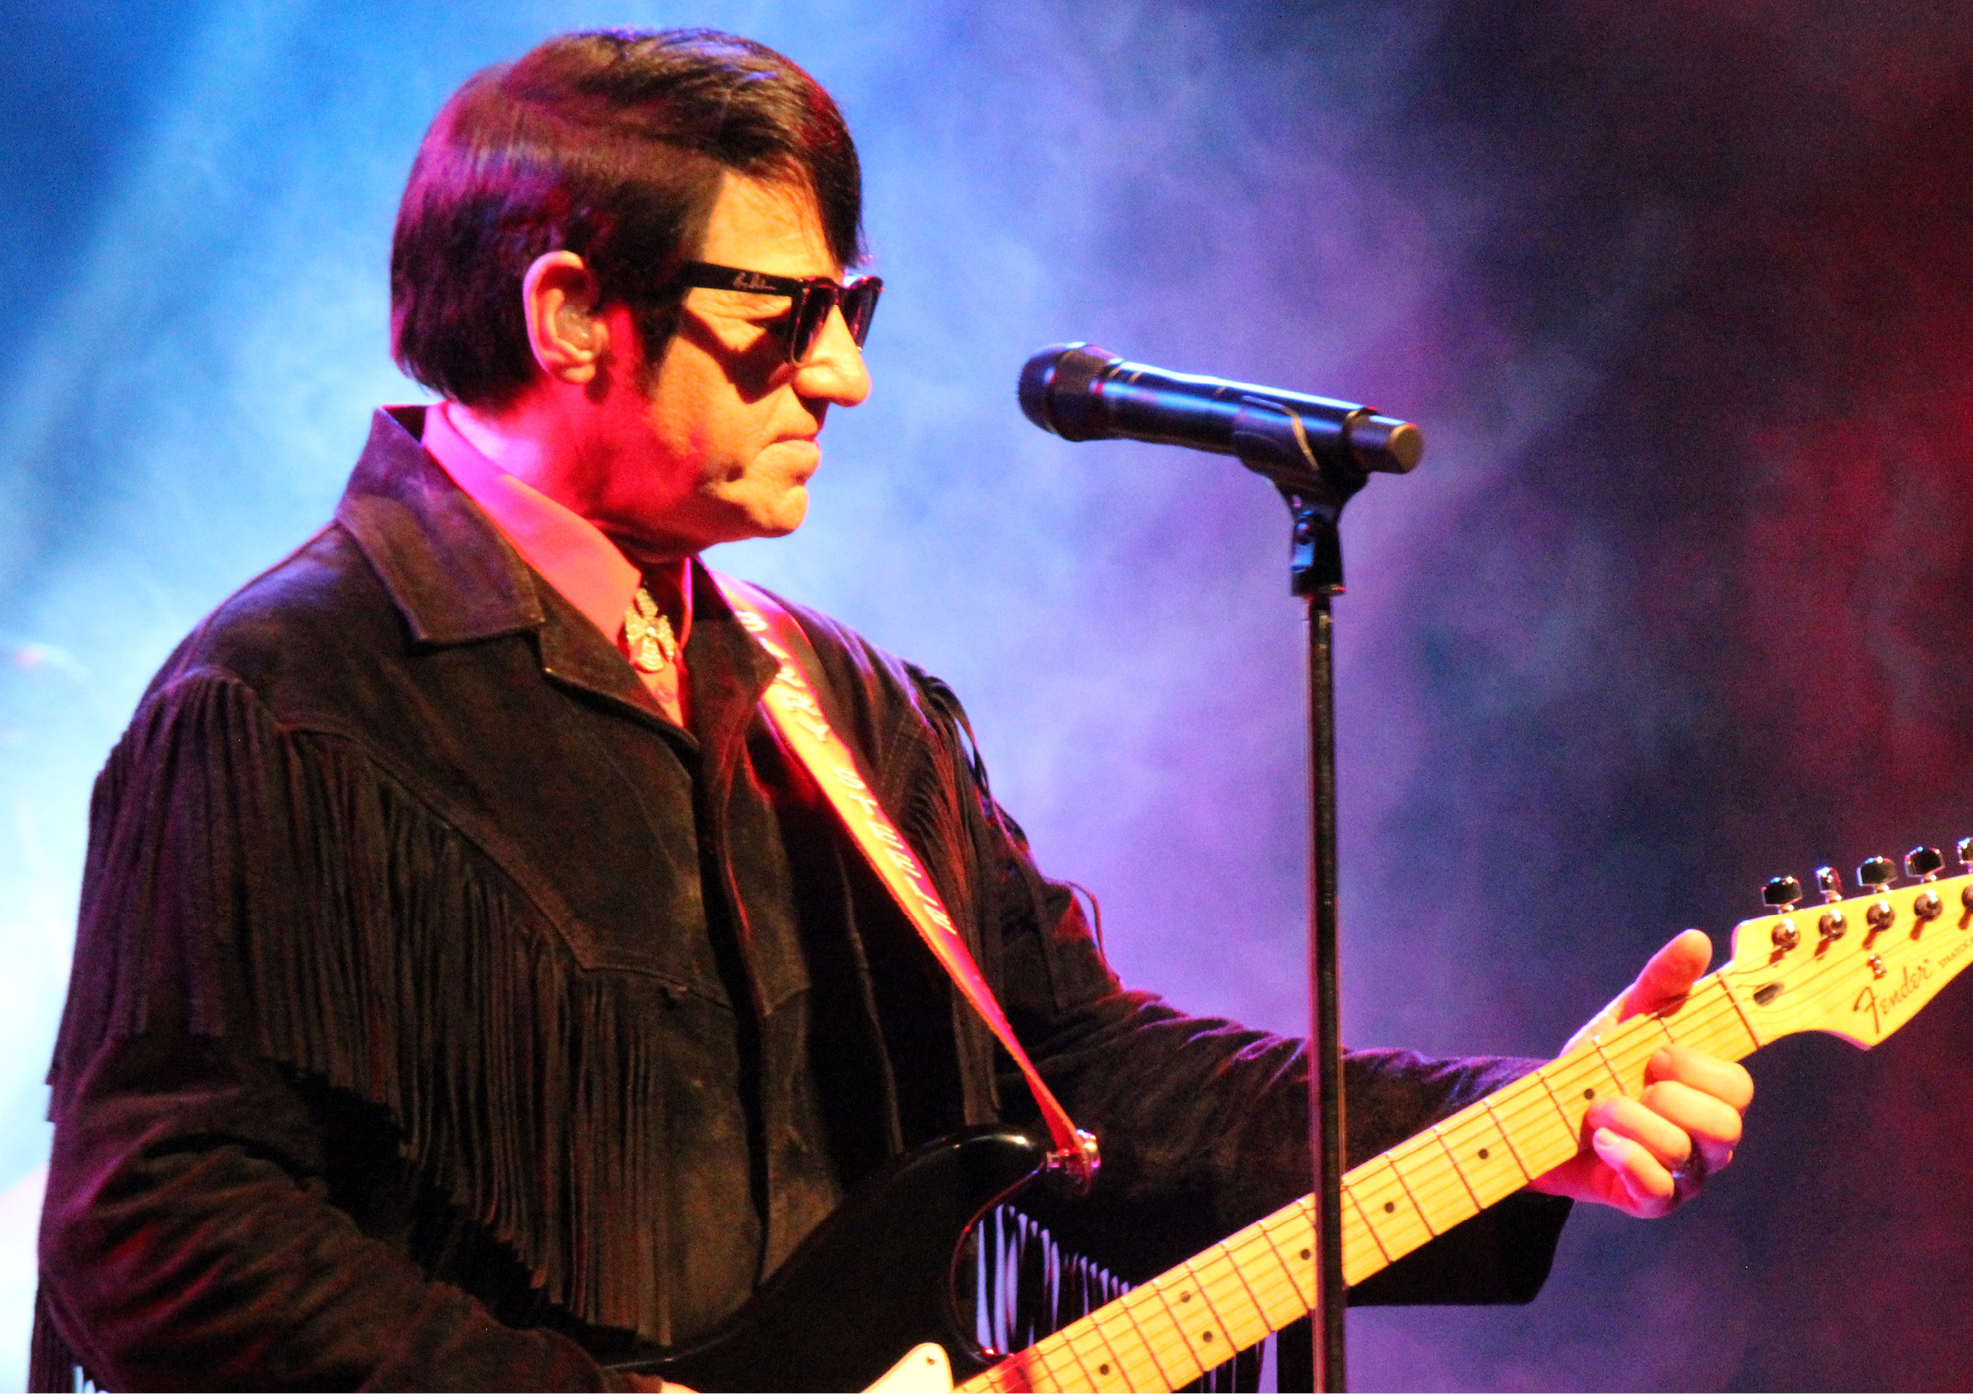 Barry Steele & Friends - The Roy Orbison Story 30 Year Special